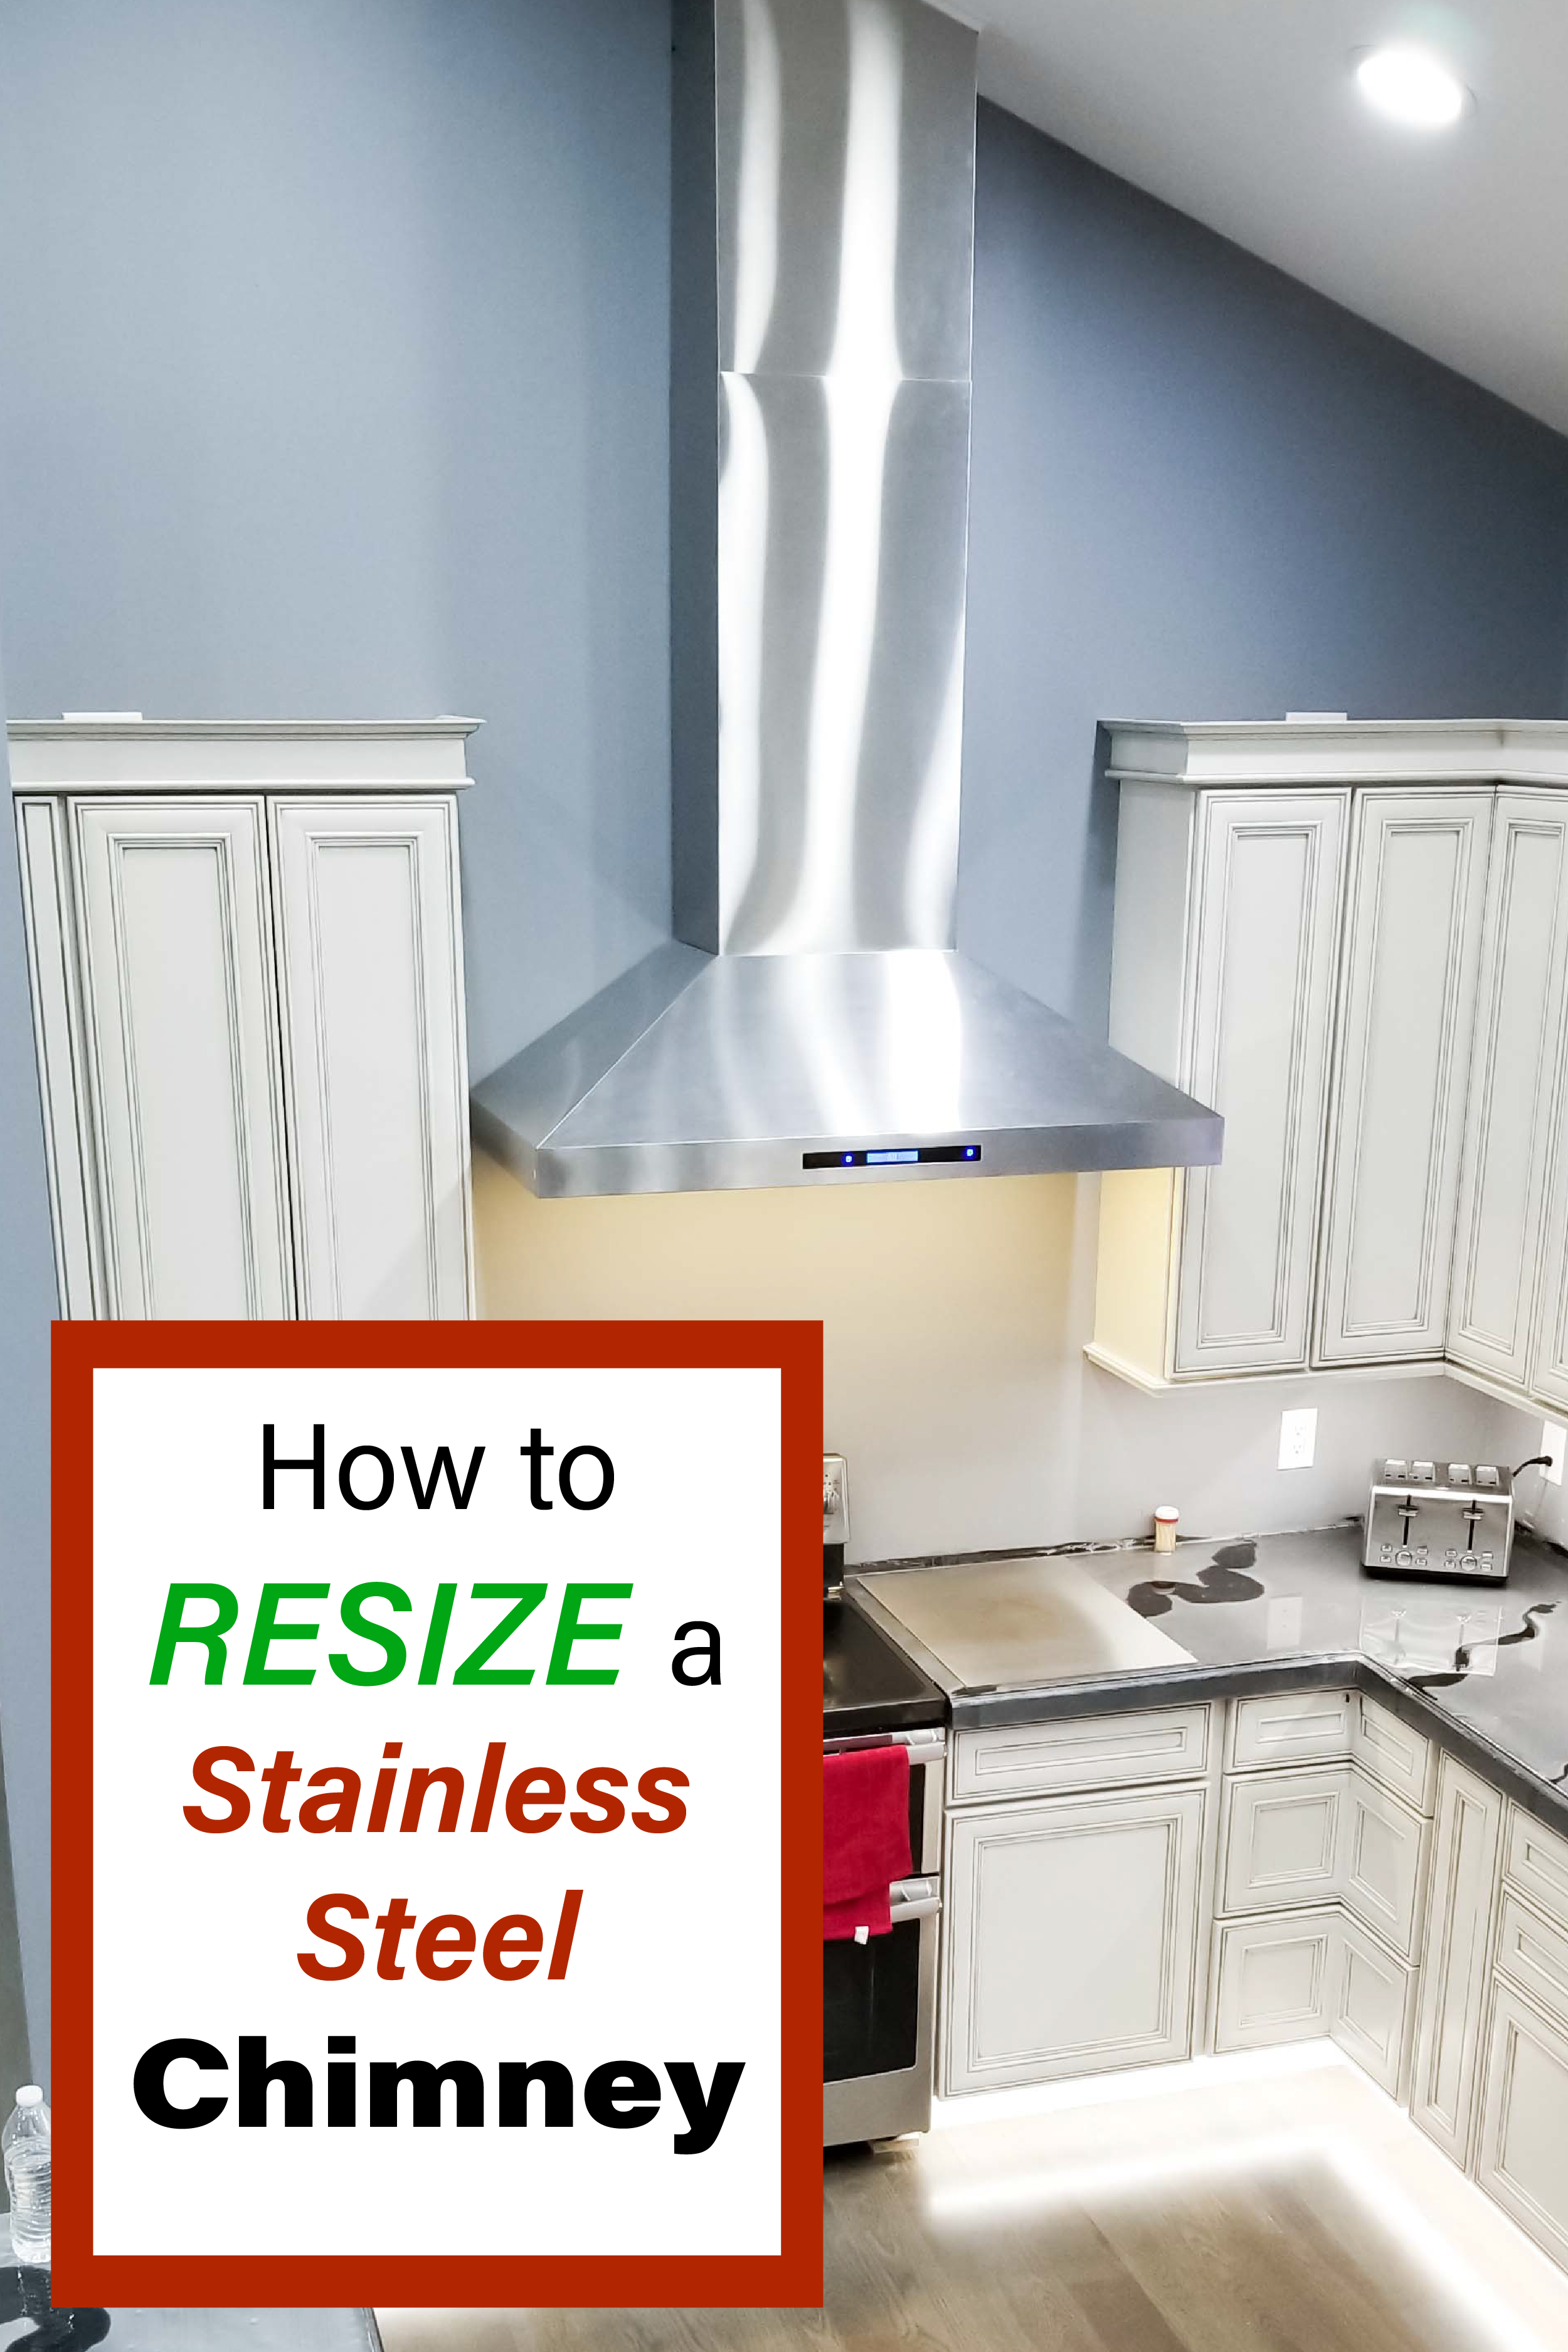 How To Resize A Stainless Steel Chimney 6 Easy Steps In 2020 Home Remodeling Stainless Steel Range Stainless Steel Range Hood